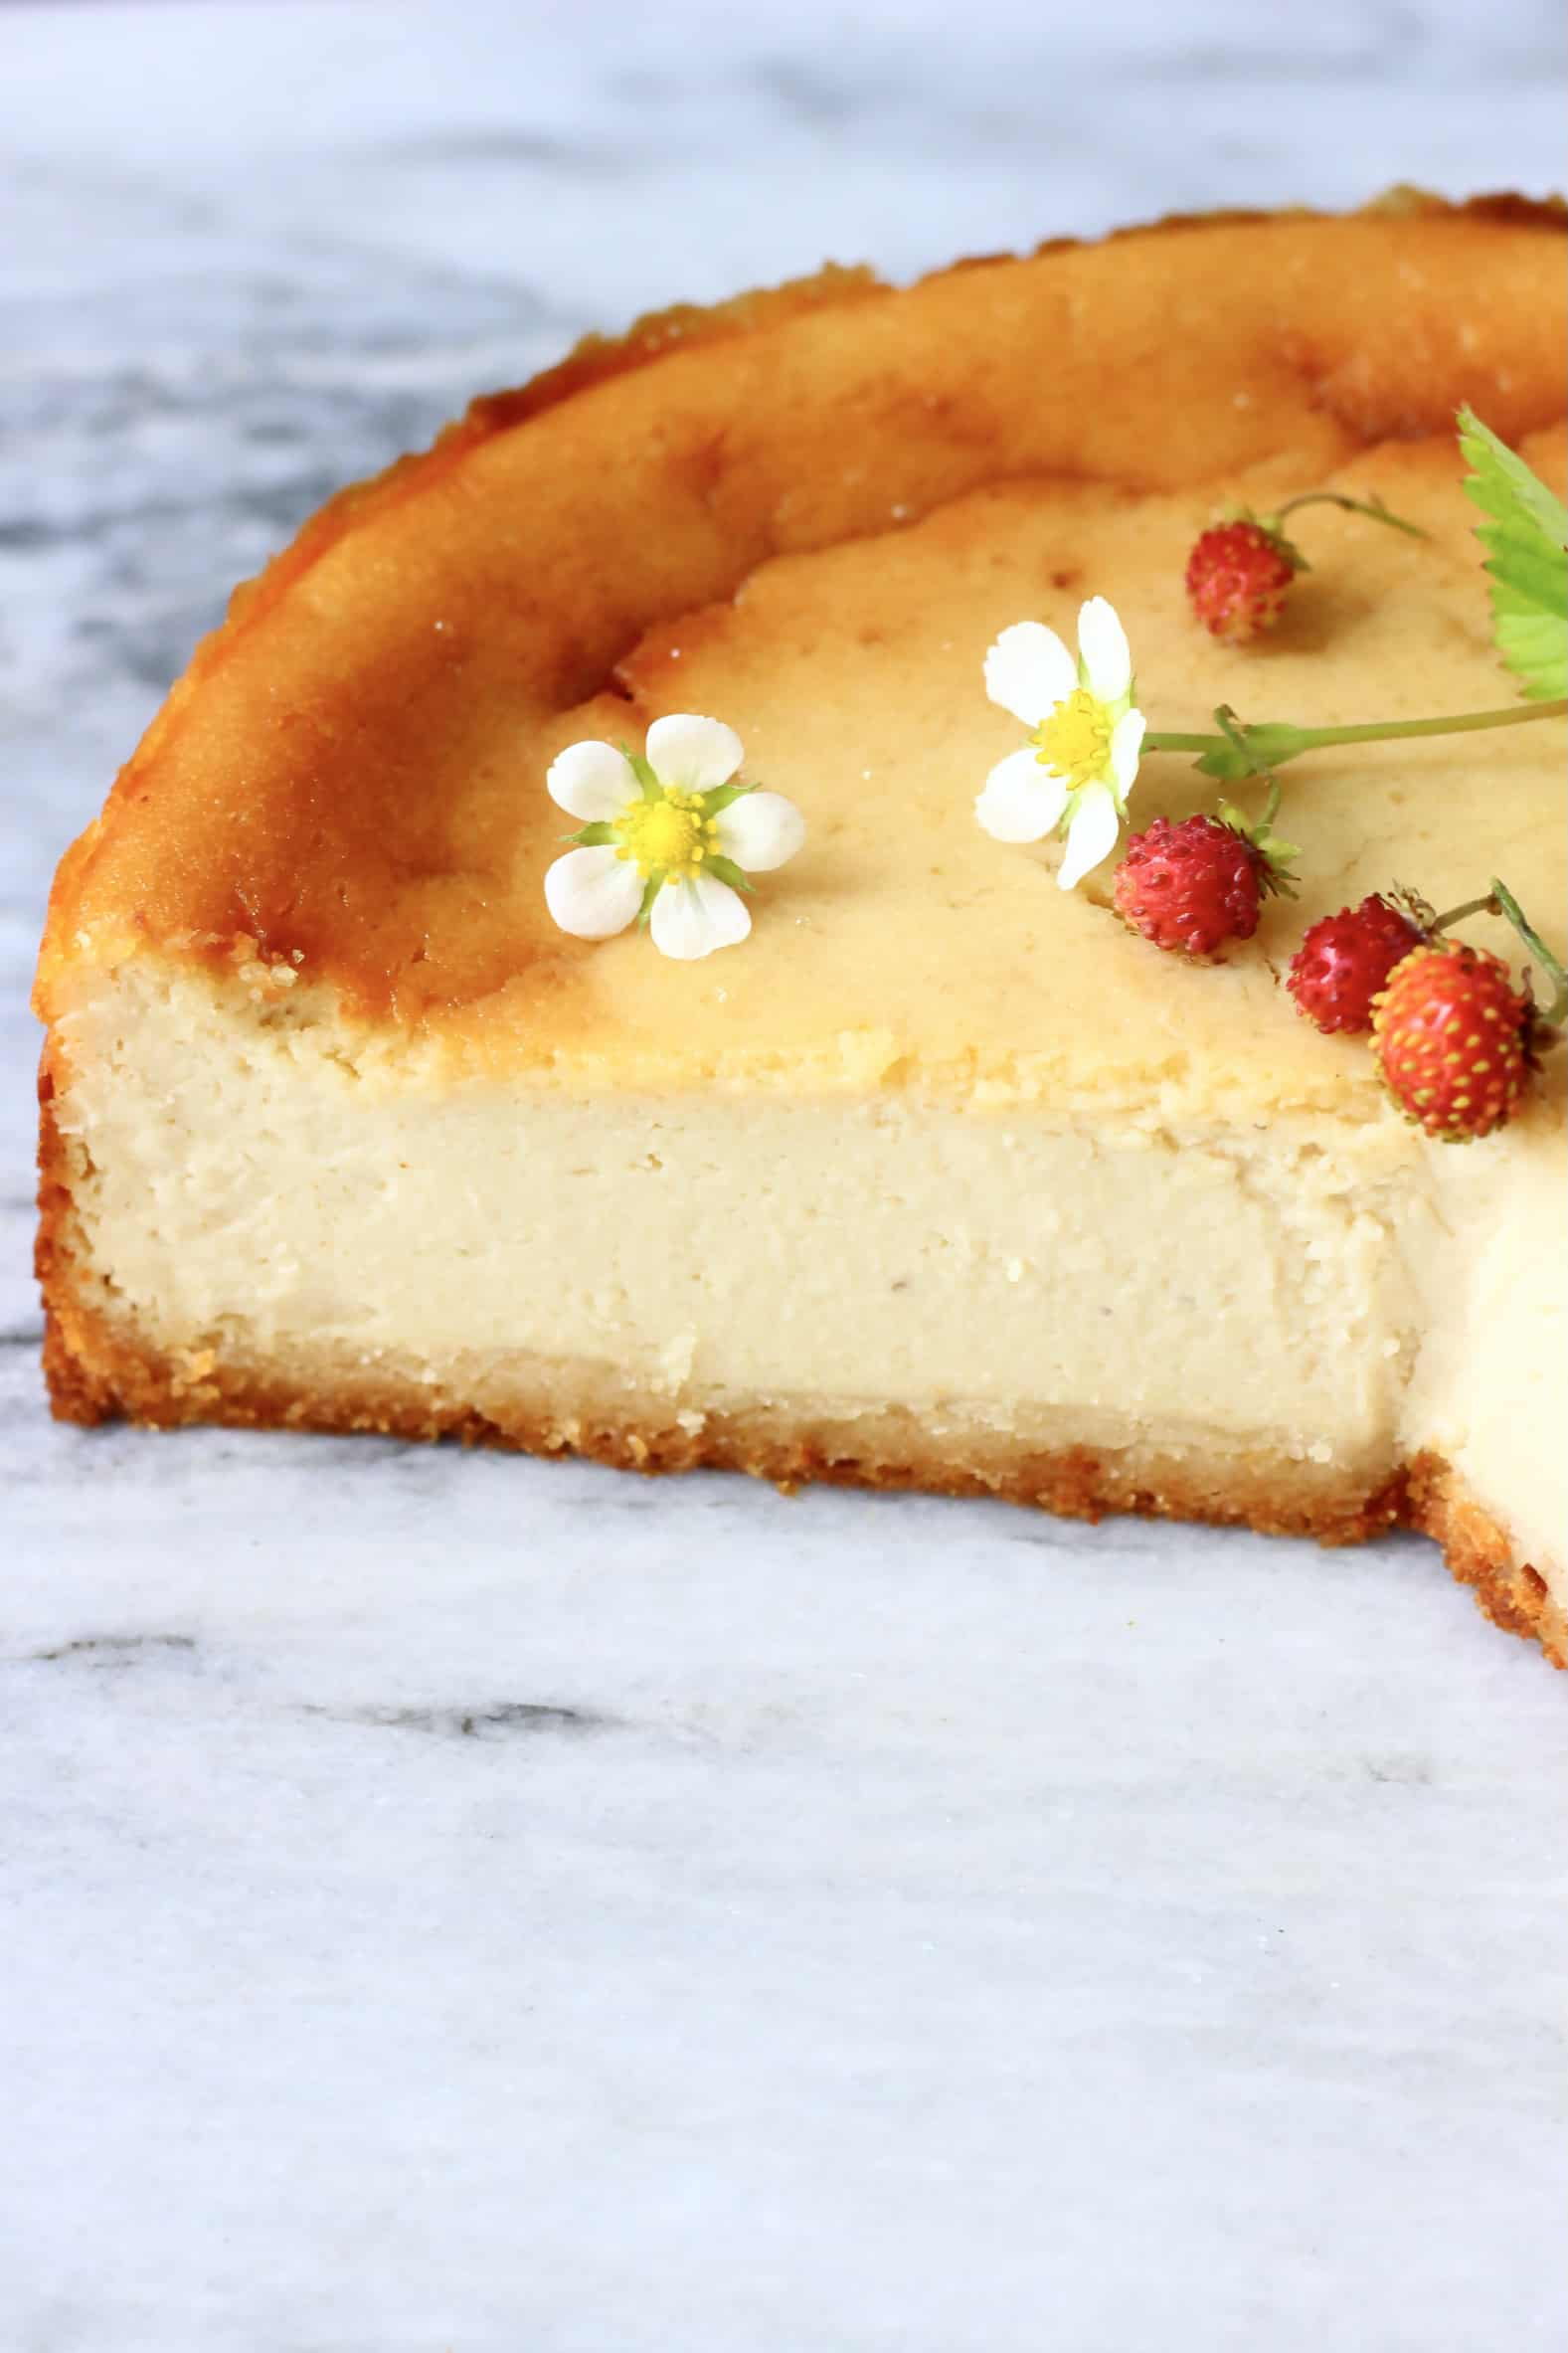 A sliced vegan baked cheesecake topped with wild strawberries and strawberry flowers